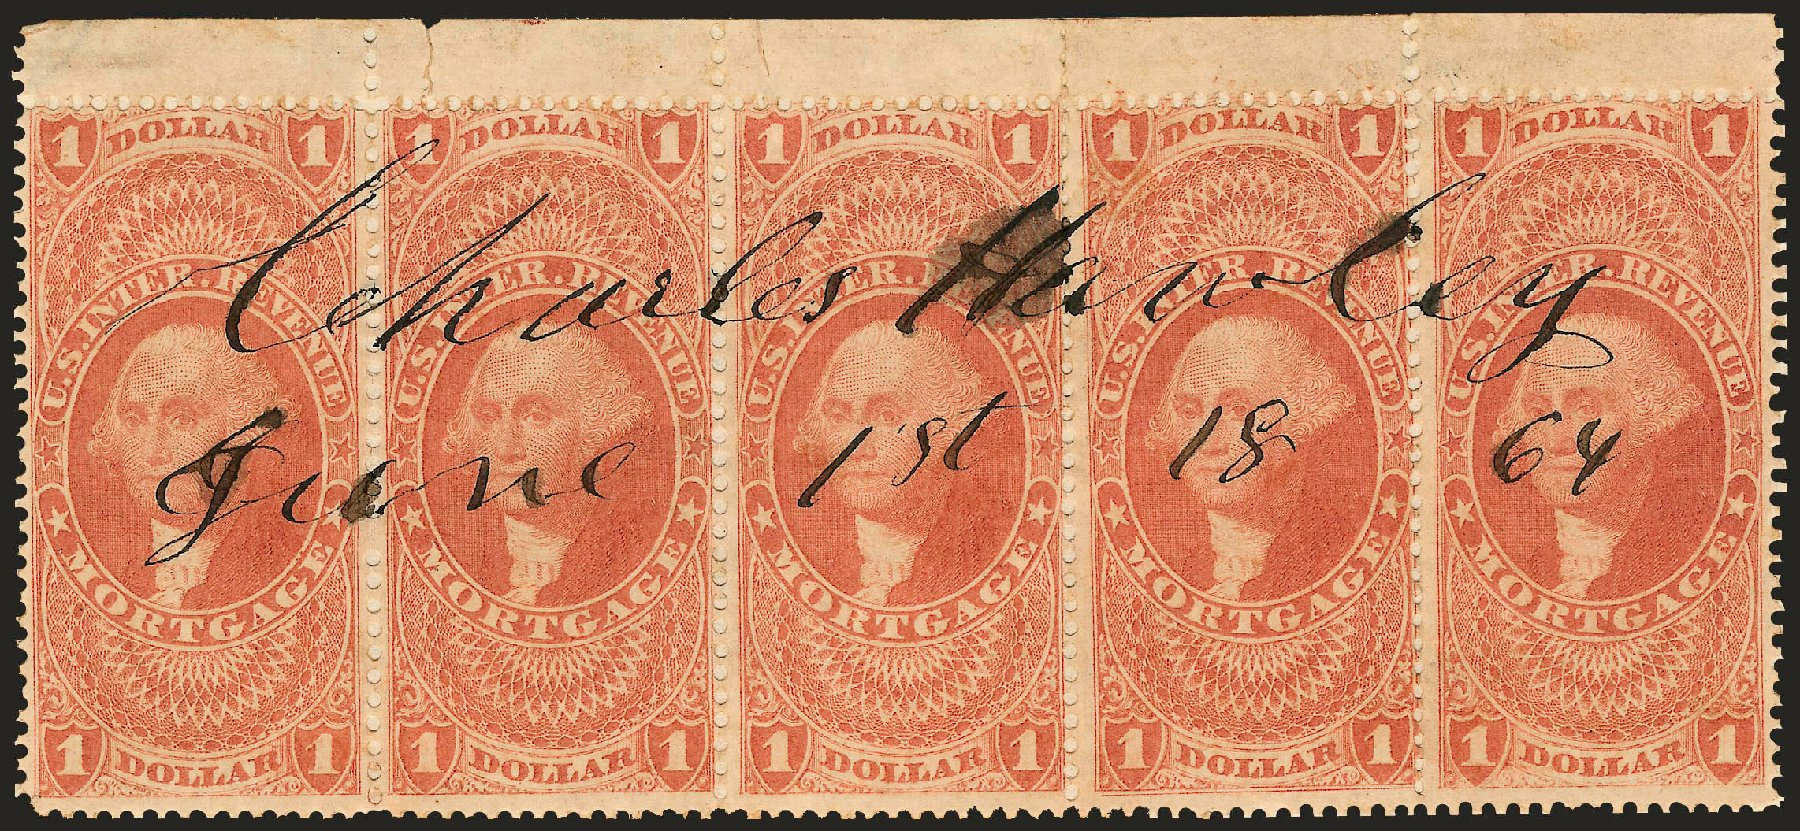 US Stamp Price Scott Catalog #R73: US$1.00 1862 Revenue Mortgage. Robert Siegel Auction Galleries, Jun 2009, Sale 975, Lot 2294